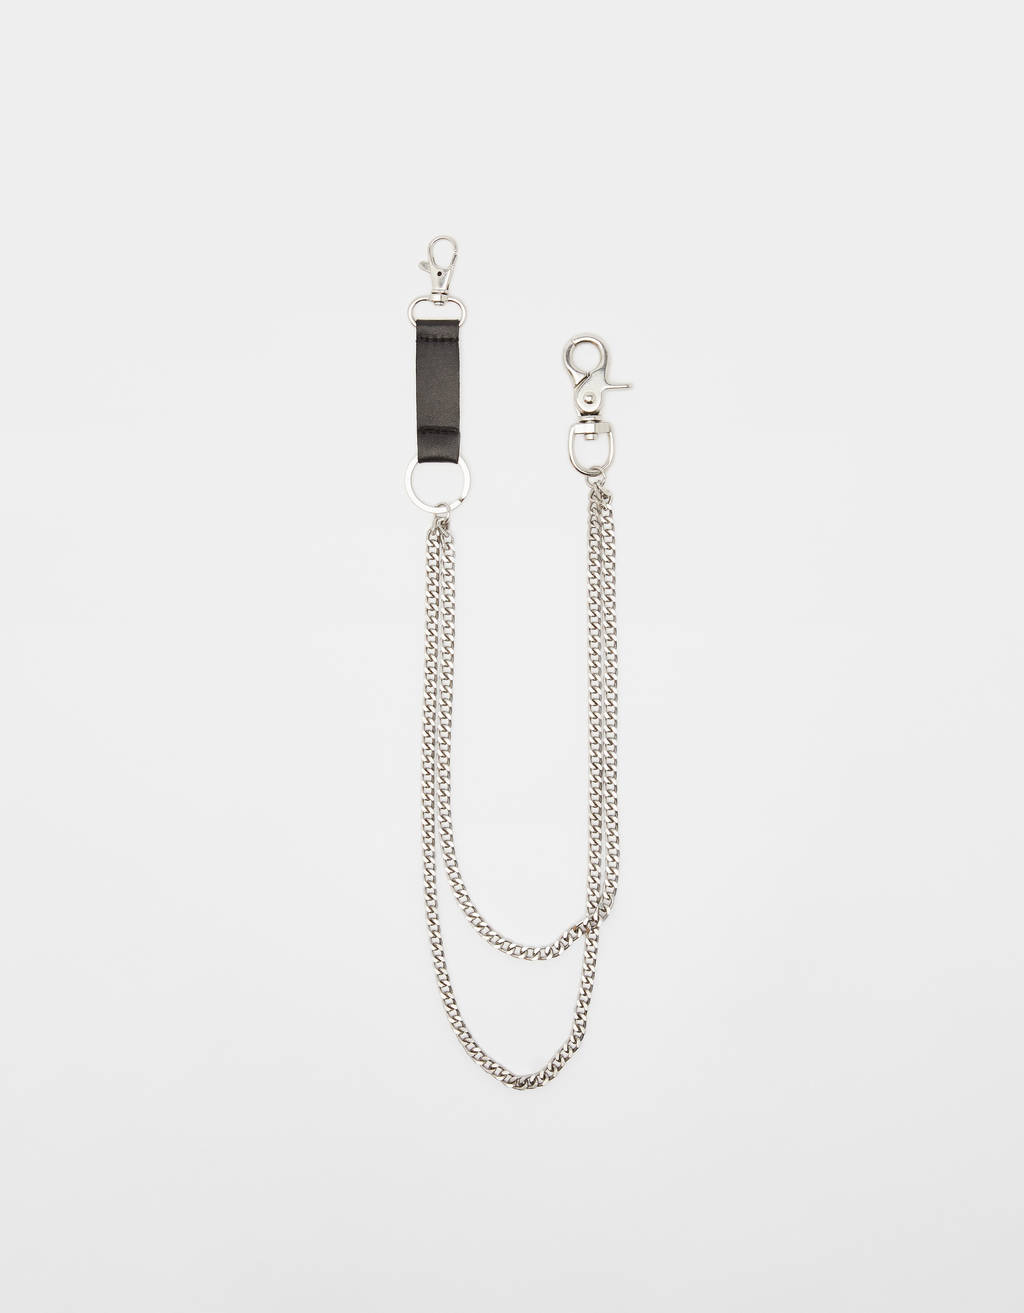 Chain key ring with faux leather detail